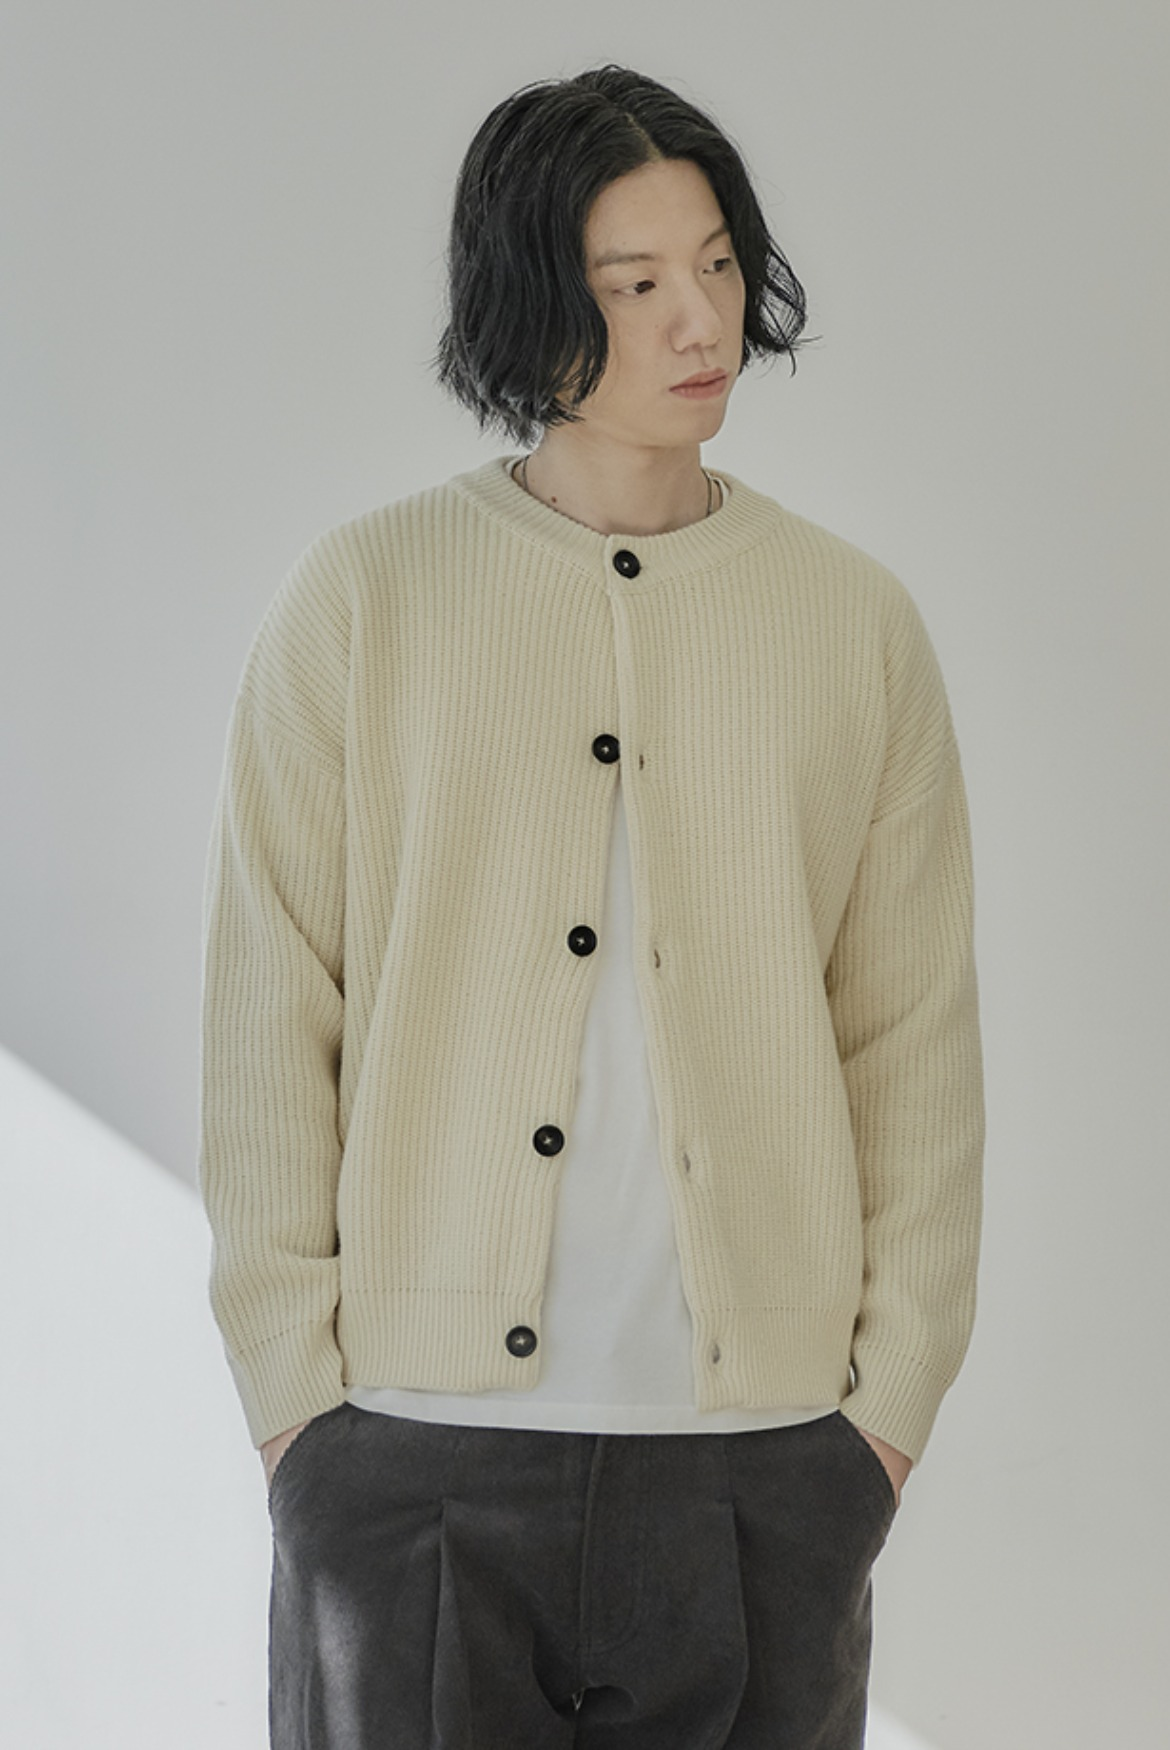 Concise Round Neck Cardigan [Egg White]